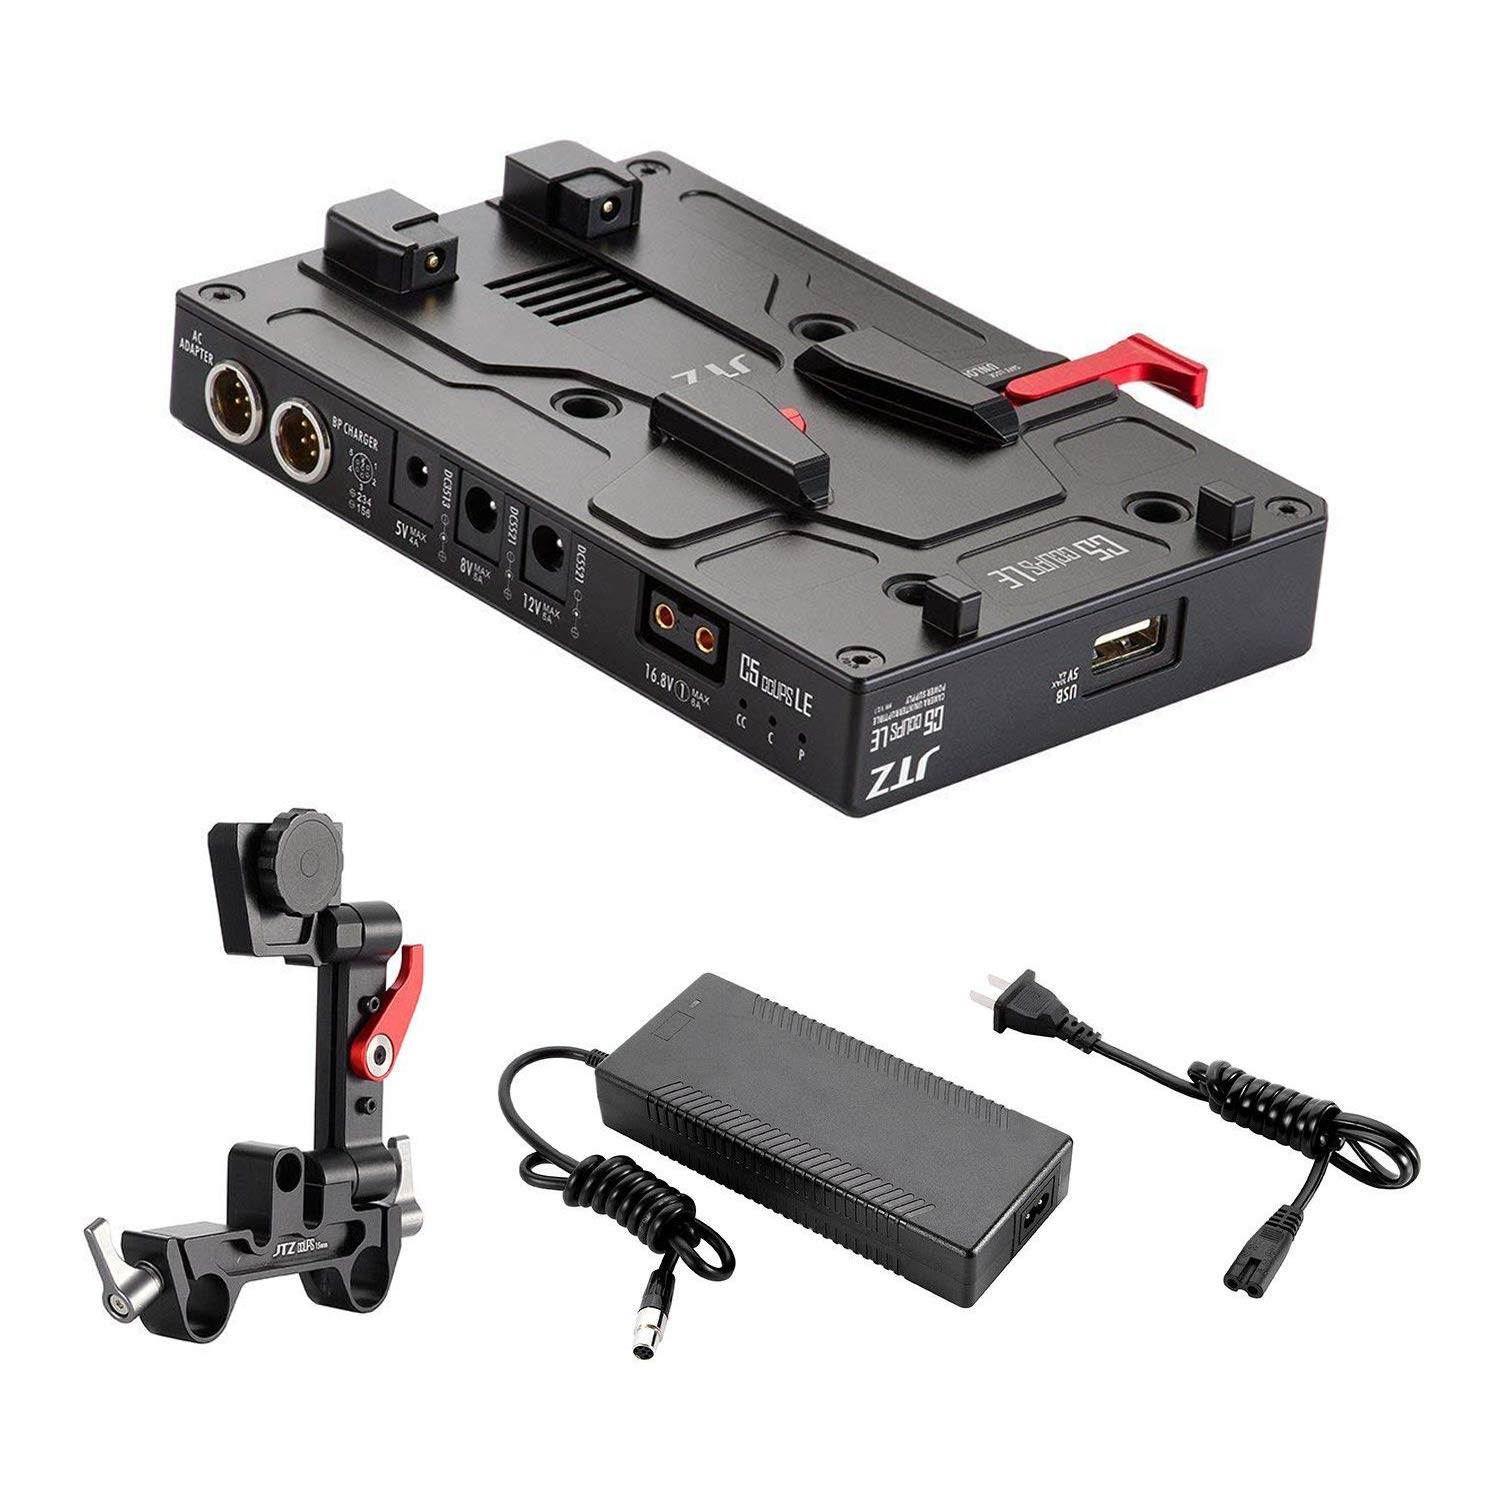 JTZ DP30 C5 LE CCUPS V-Mount Uninterrupted Power Supply BP Battery Plate with 15mm/19mm Rail Rod Clamp for Canon 7D 5D Sony A7 A7R A7S II III Panasonic GH3 GH4 GH5 Blackmagic BMPCC 4K Monitor D-Tap by Run Shuangyu